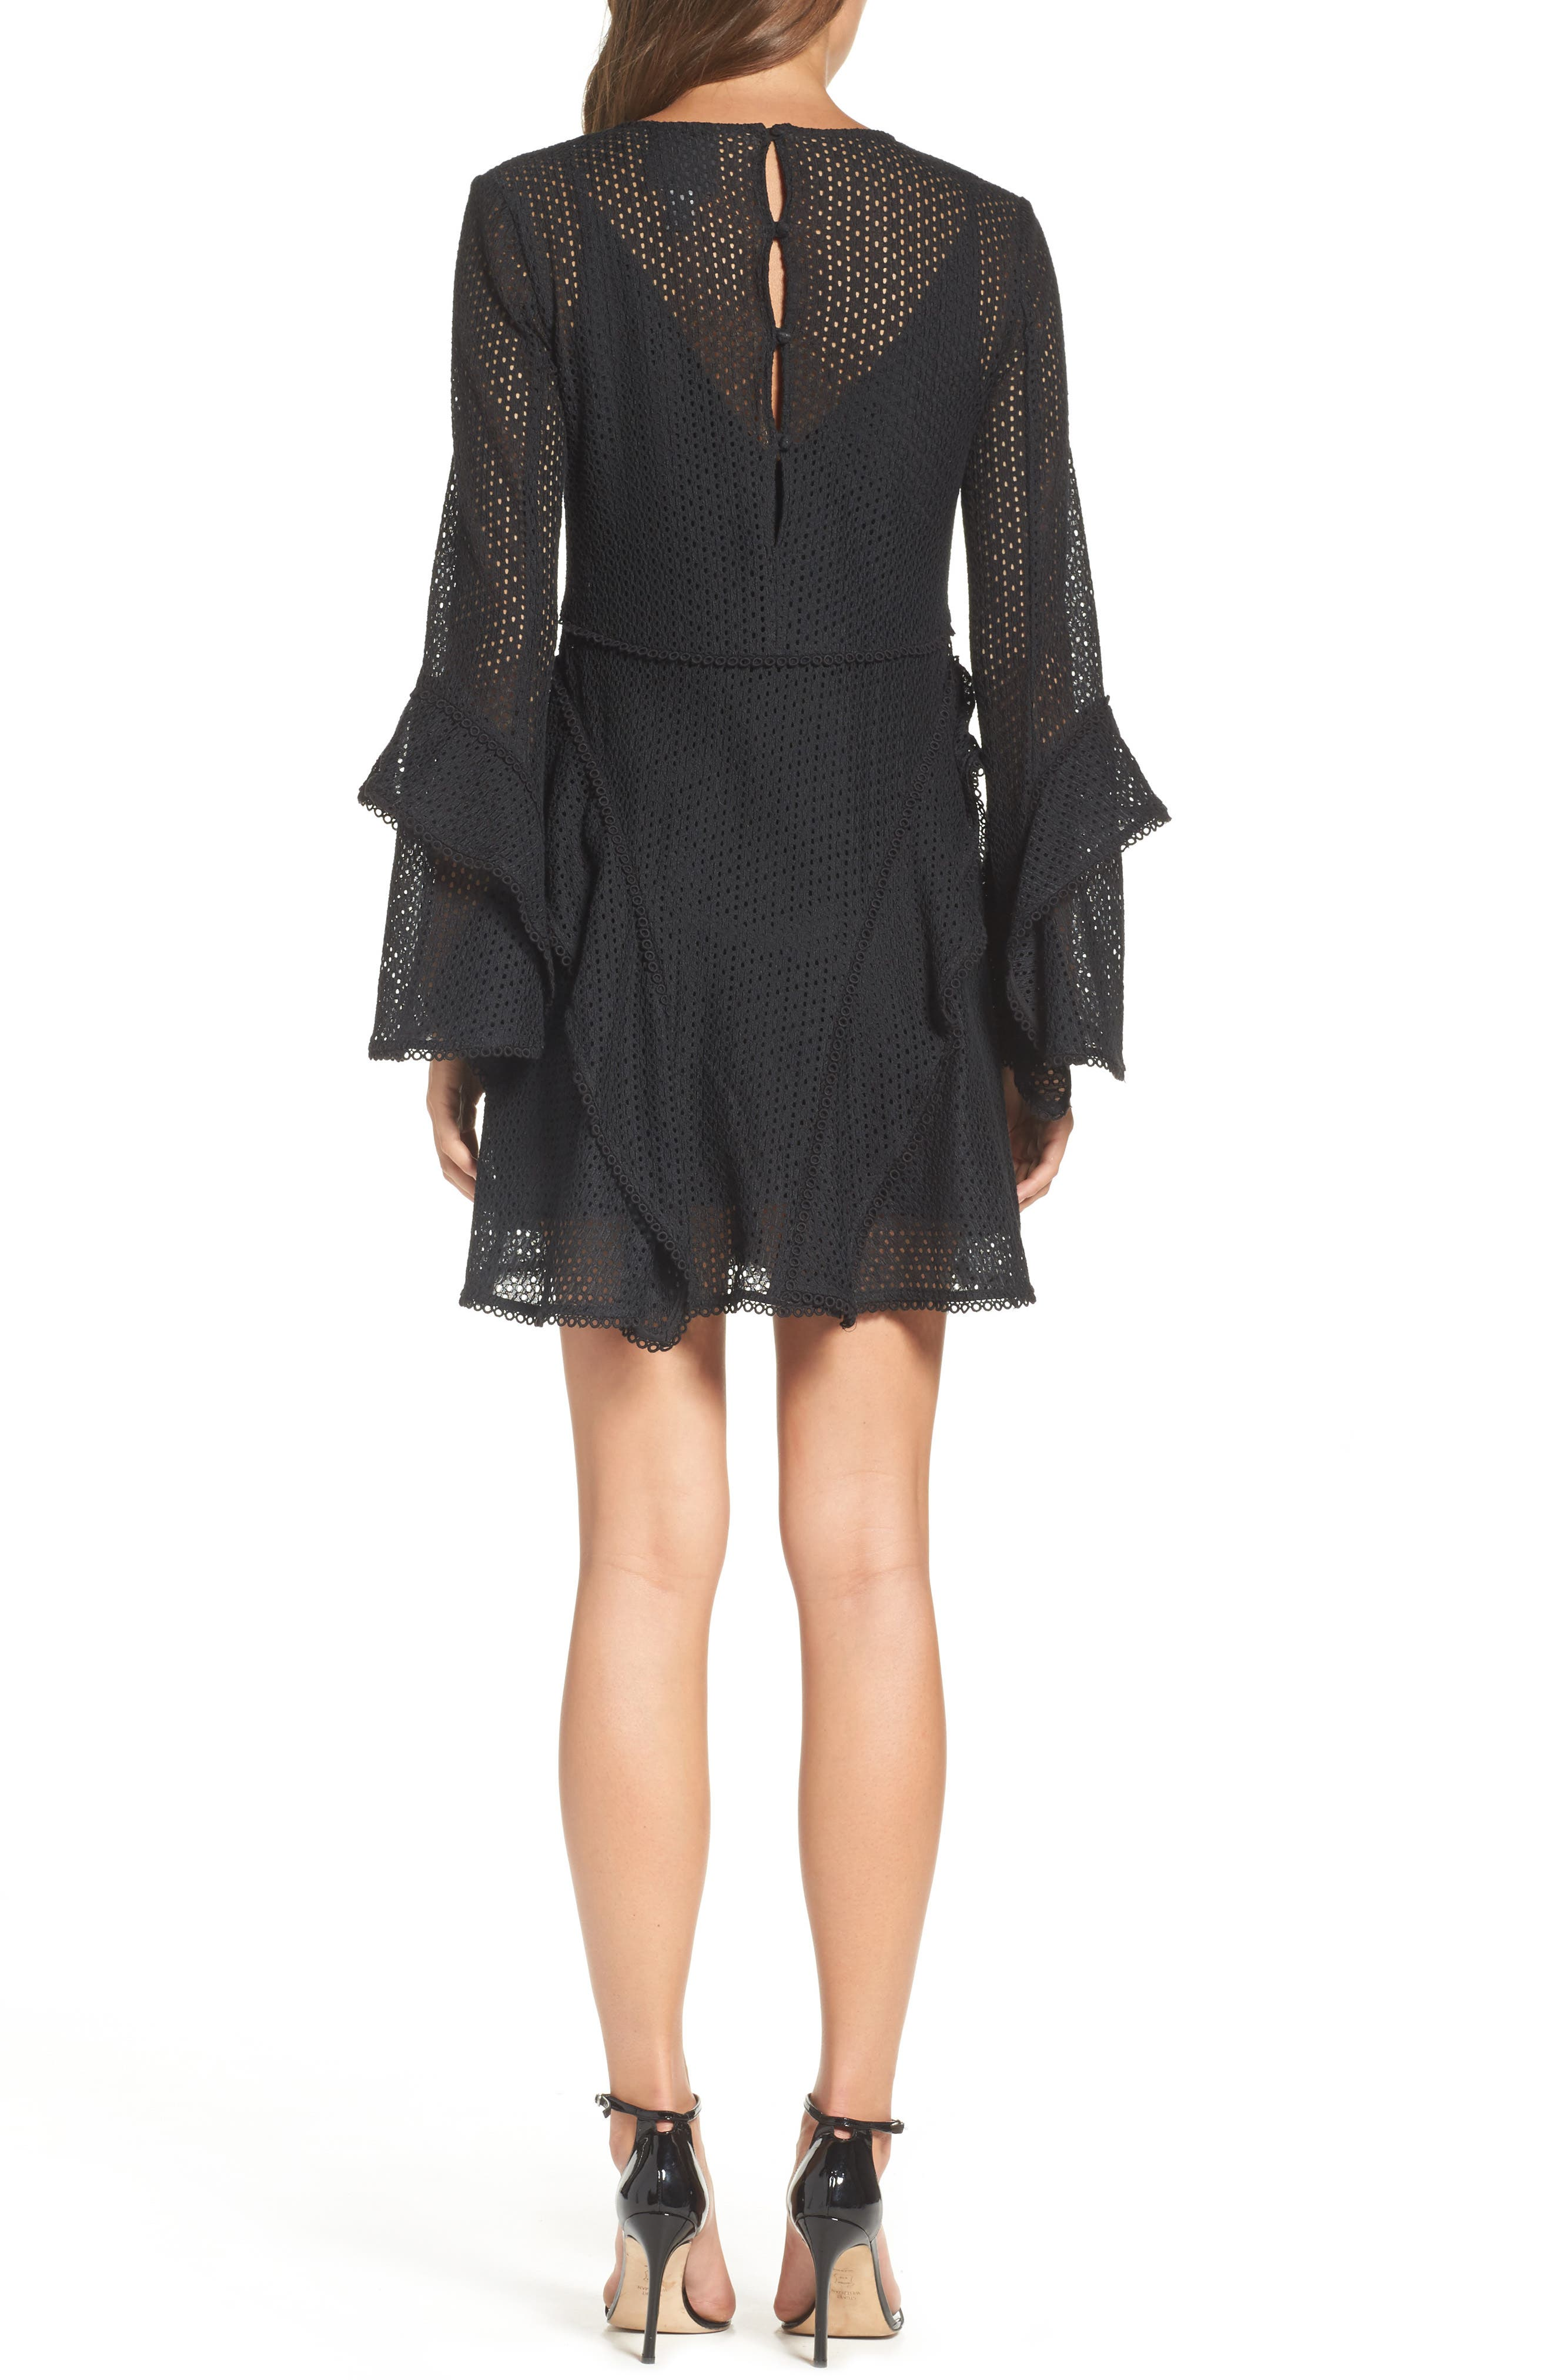 Aspire Lace Bell Sleeve Minidress,                             Alternate thumbnail 2, color,                             001